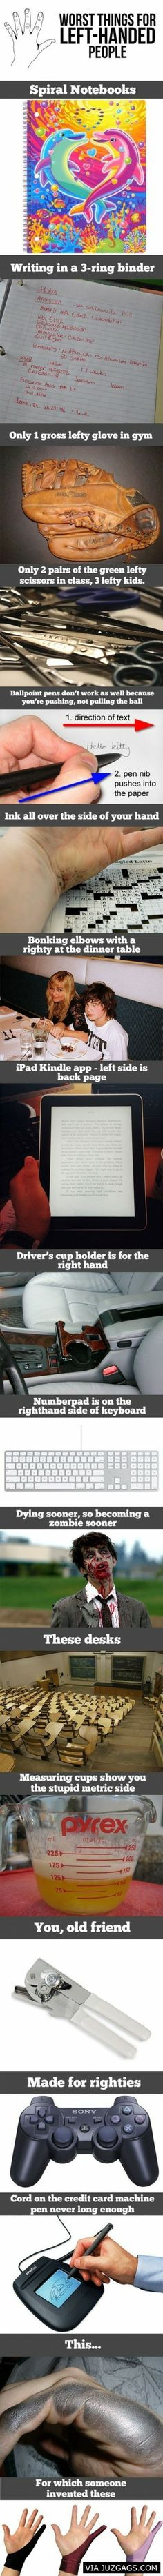 Worst things for left-handed people - Via: JuzGags.com